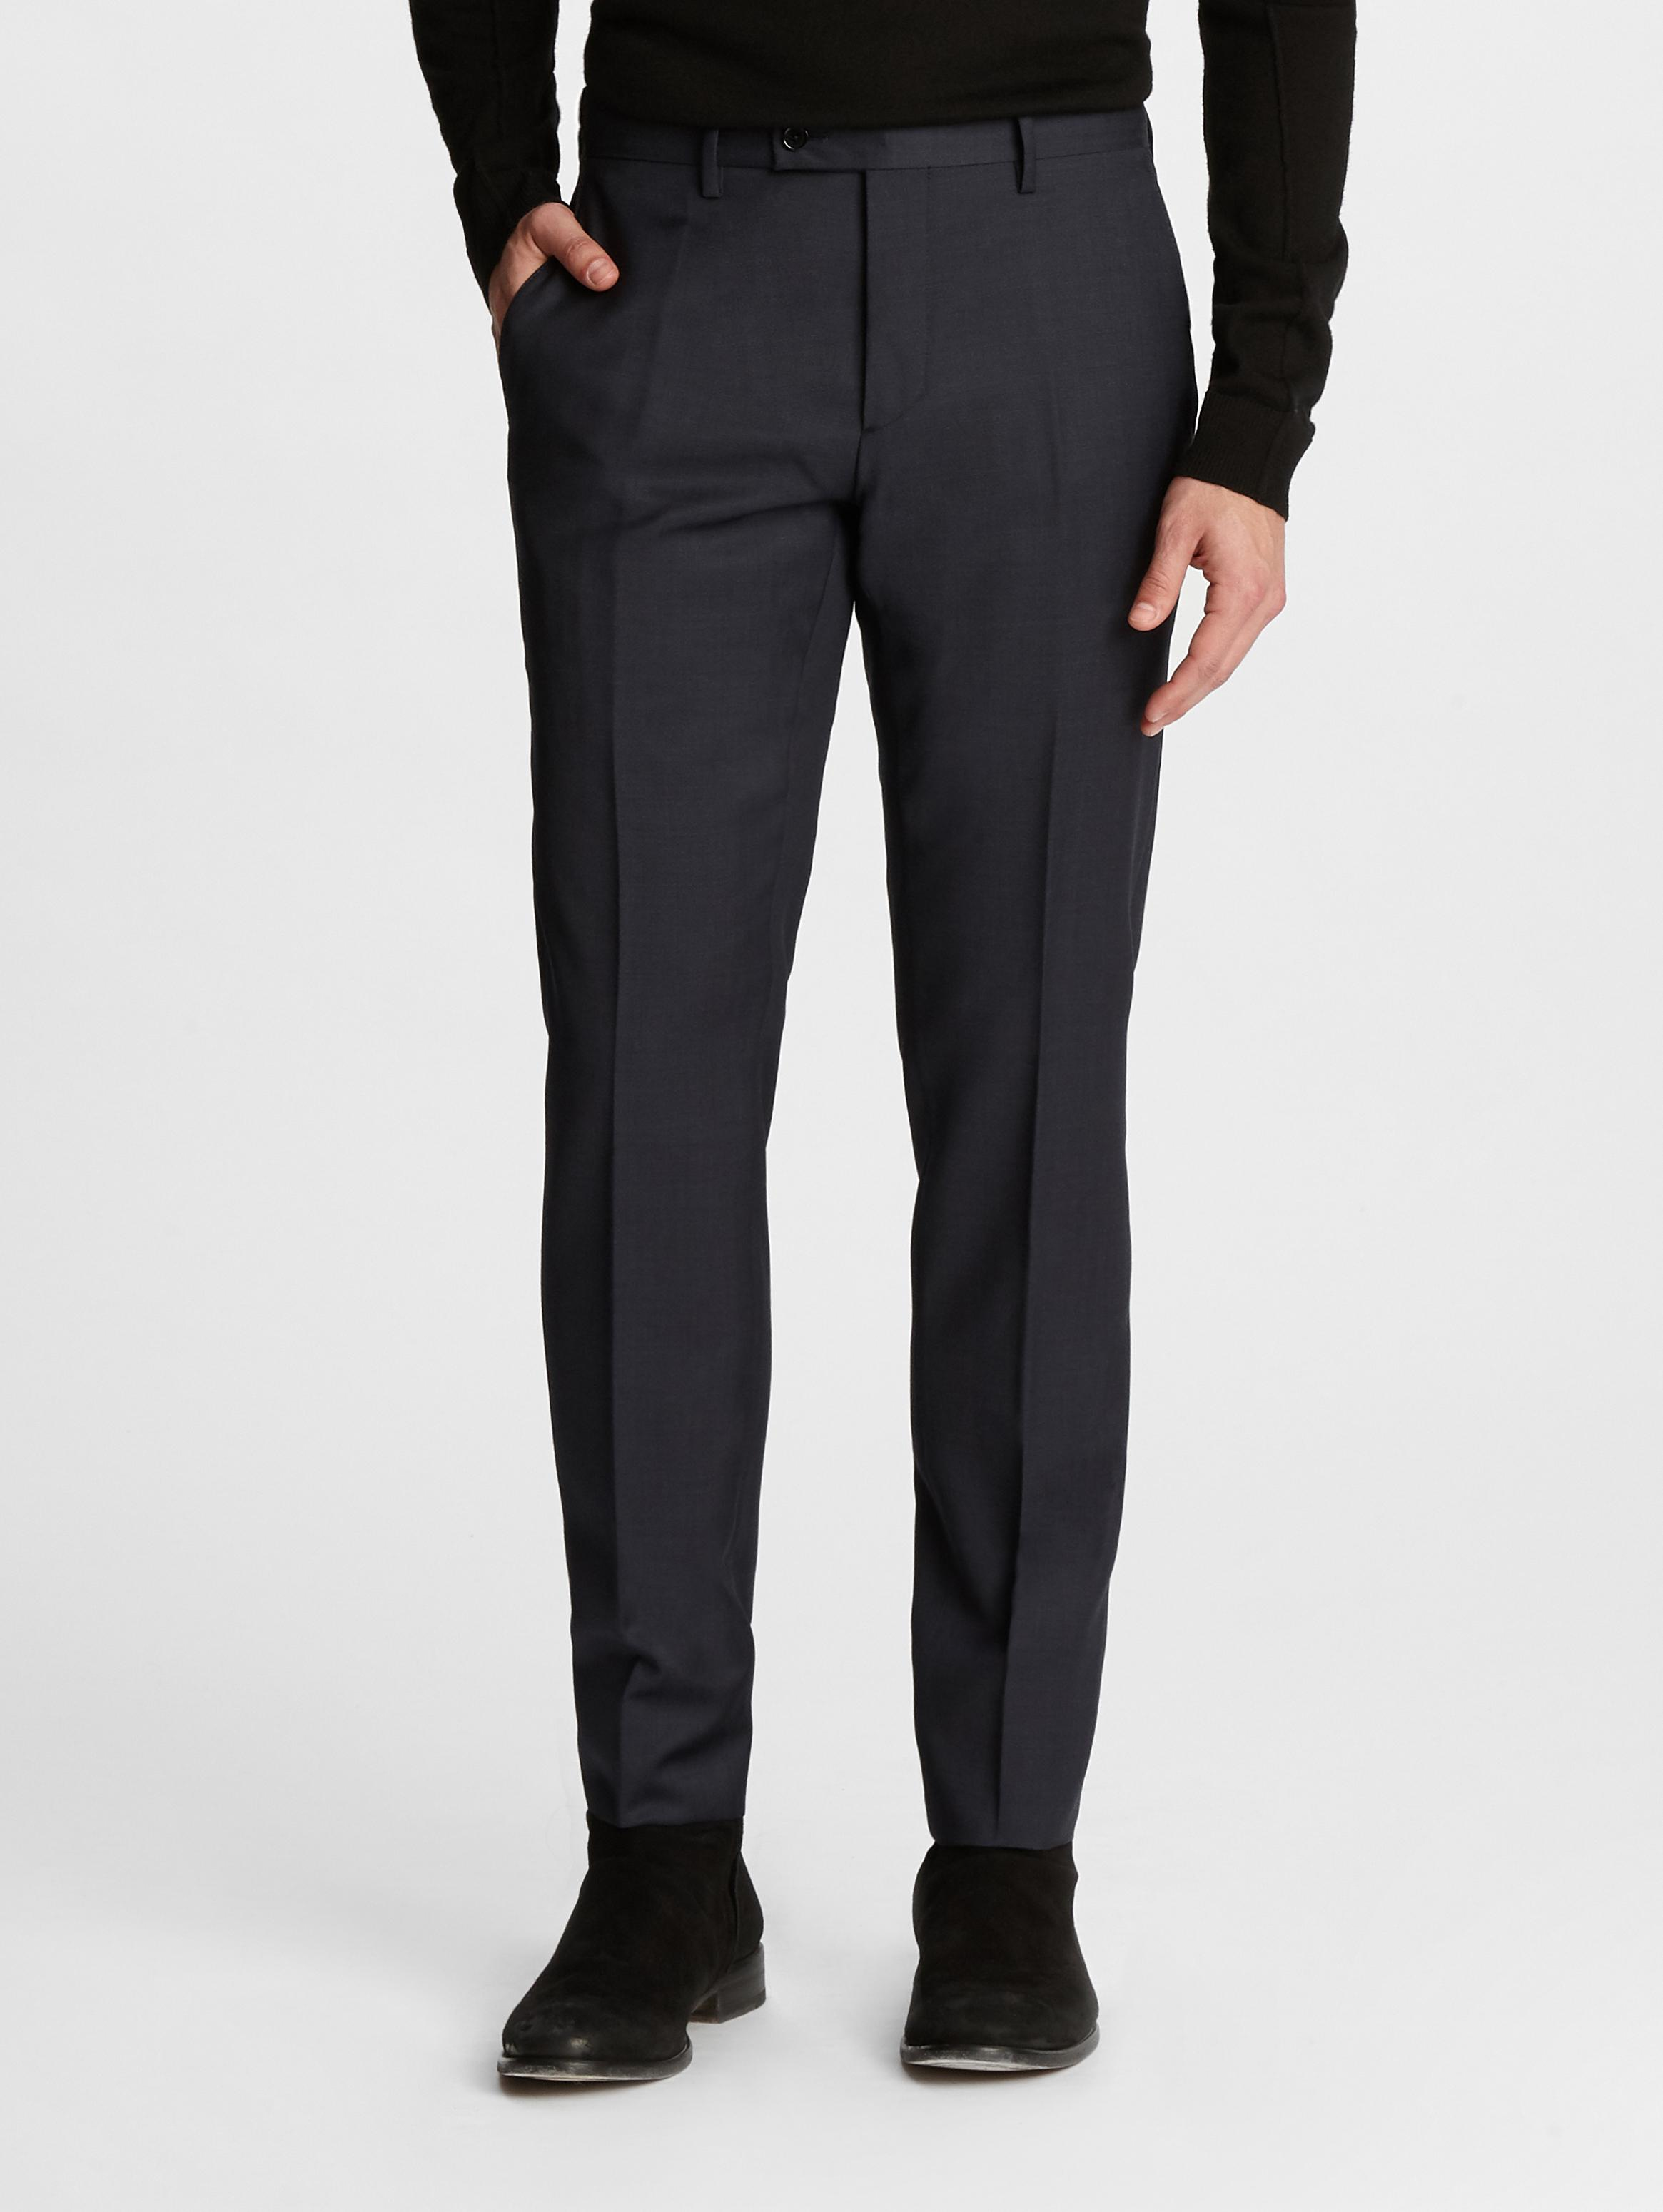 AUSTIN FIT:   SLIM FIT STRAIGHT LEG PANT